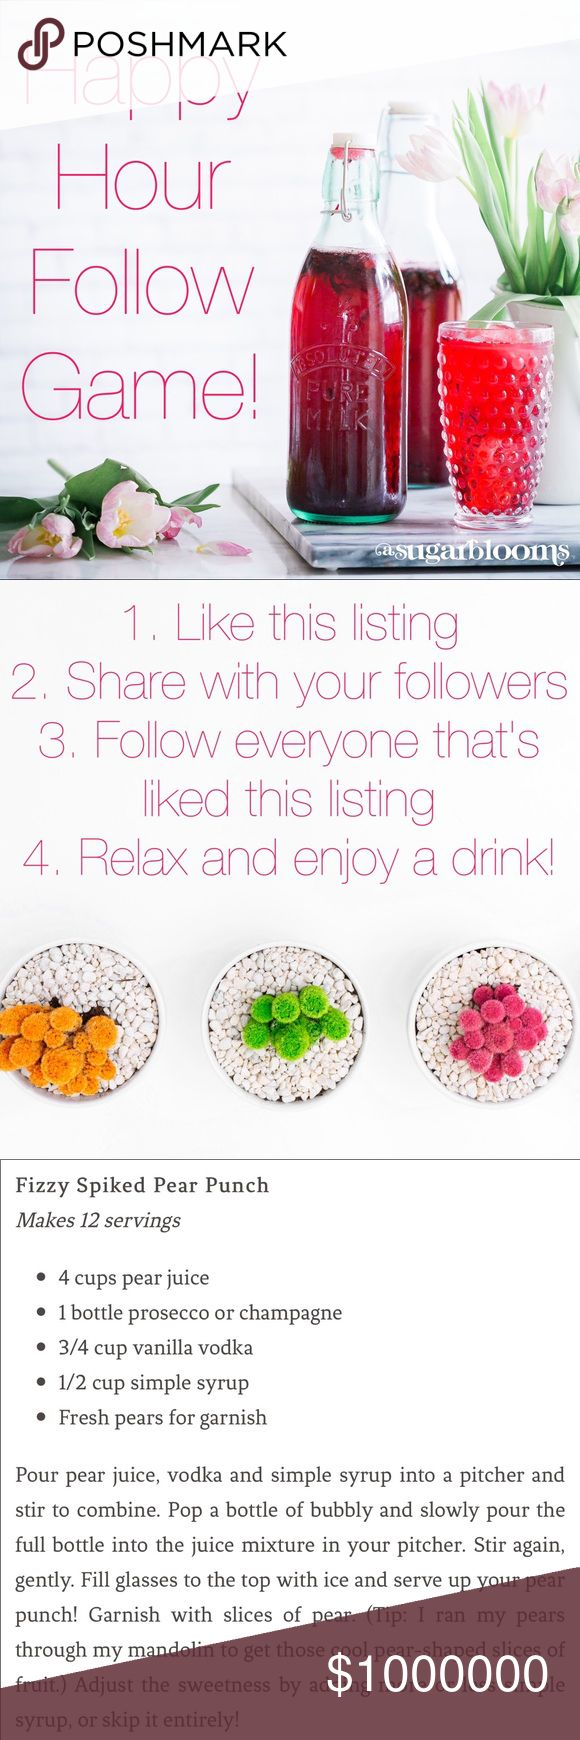 Happy Hour Follow Game & Yummy drink recipes! Hello and welcome! My name is Natascia and this is my first ever follow game! I have seen so much success in joining other Follow games so I thought it was time to pass that along. I've also added some delicious recipes for summer cocktails and a yummy mocktail... enjoy! Please follow me and share this listing 💕💕💕 Other